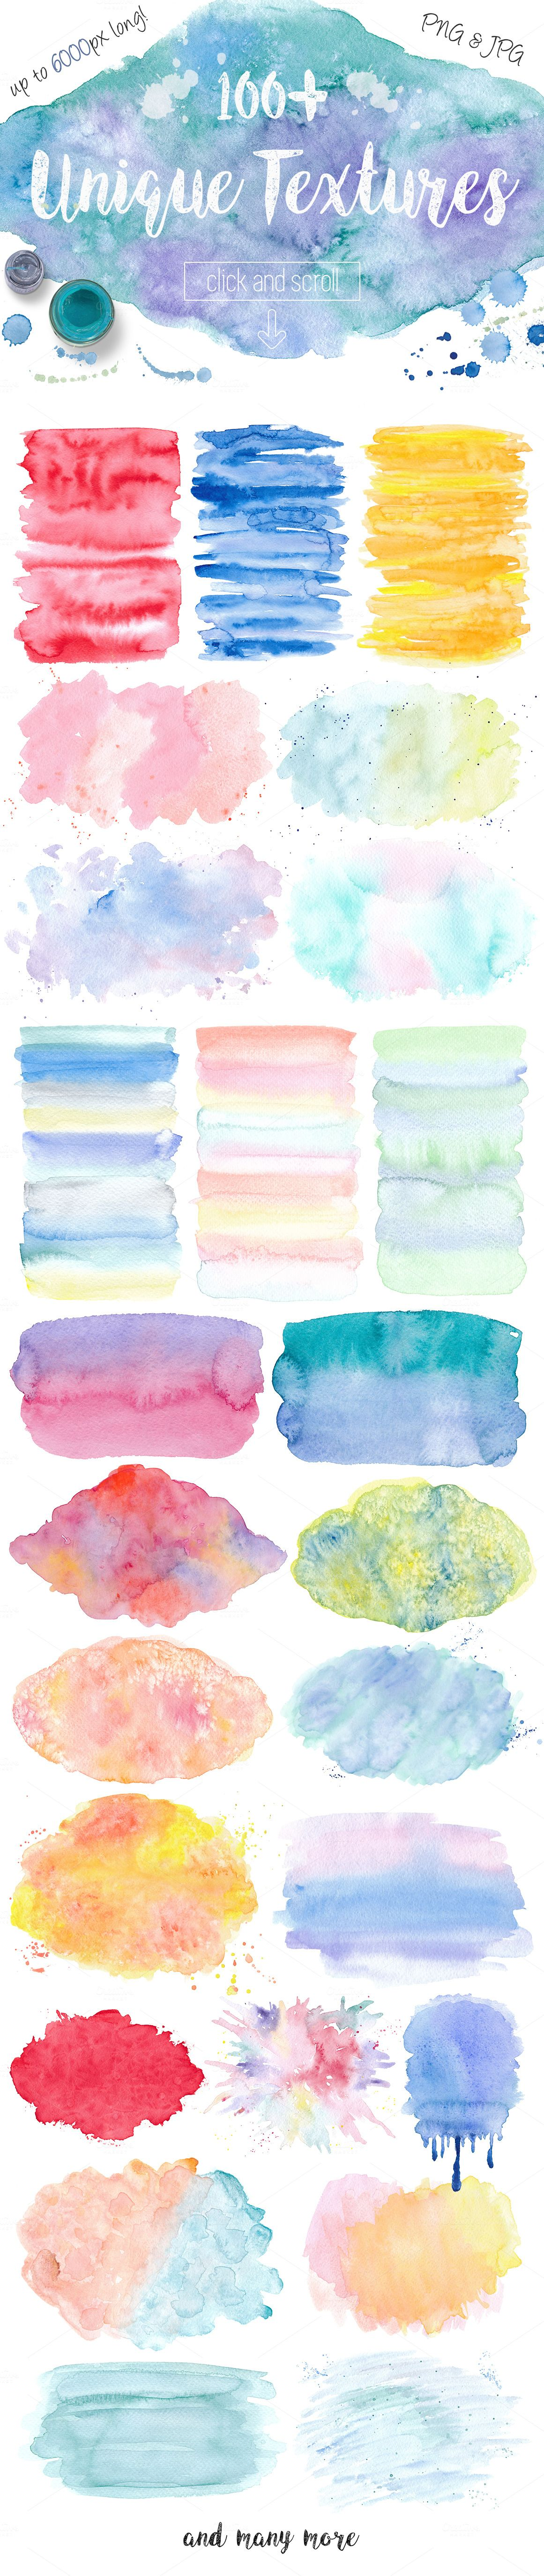 Watercolor Textures Light Bright By Switzergirl On Creativemarket